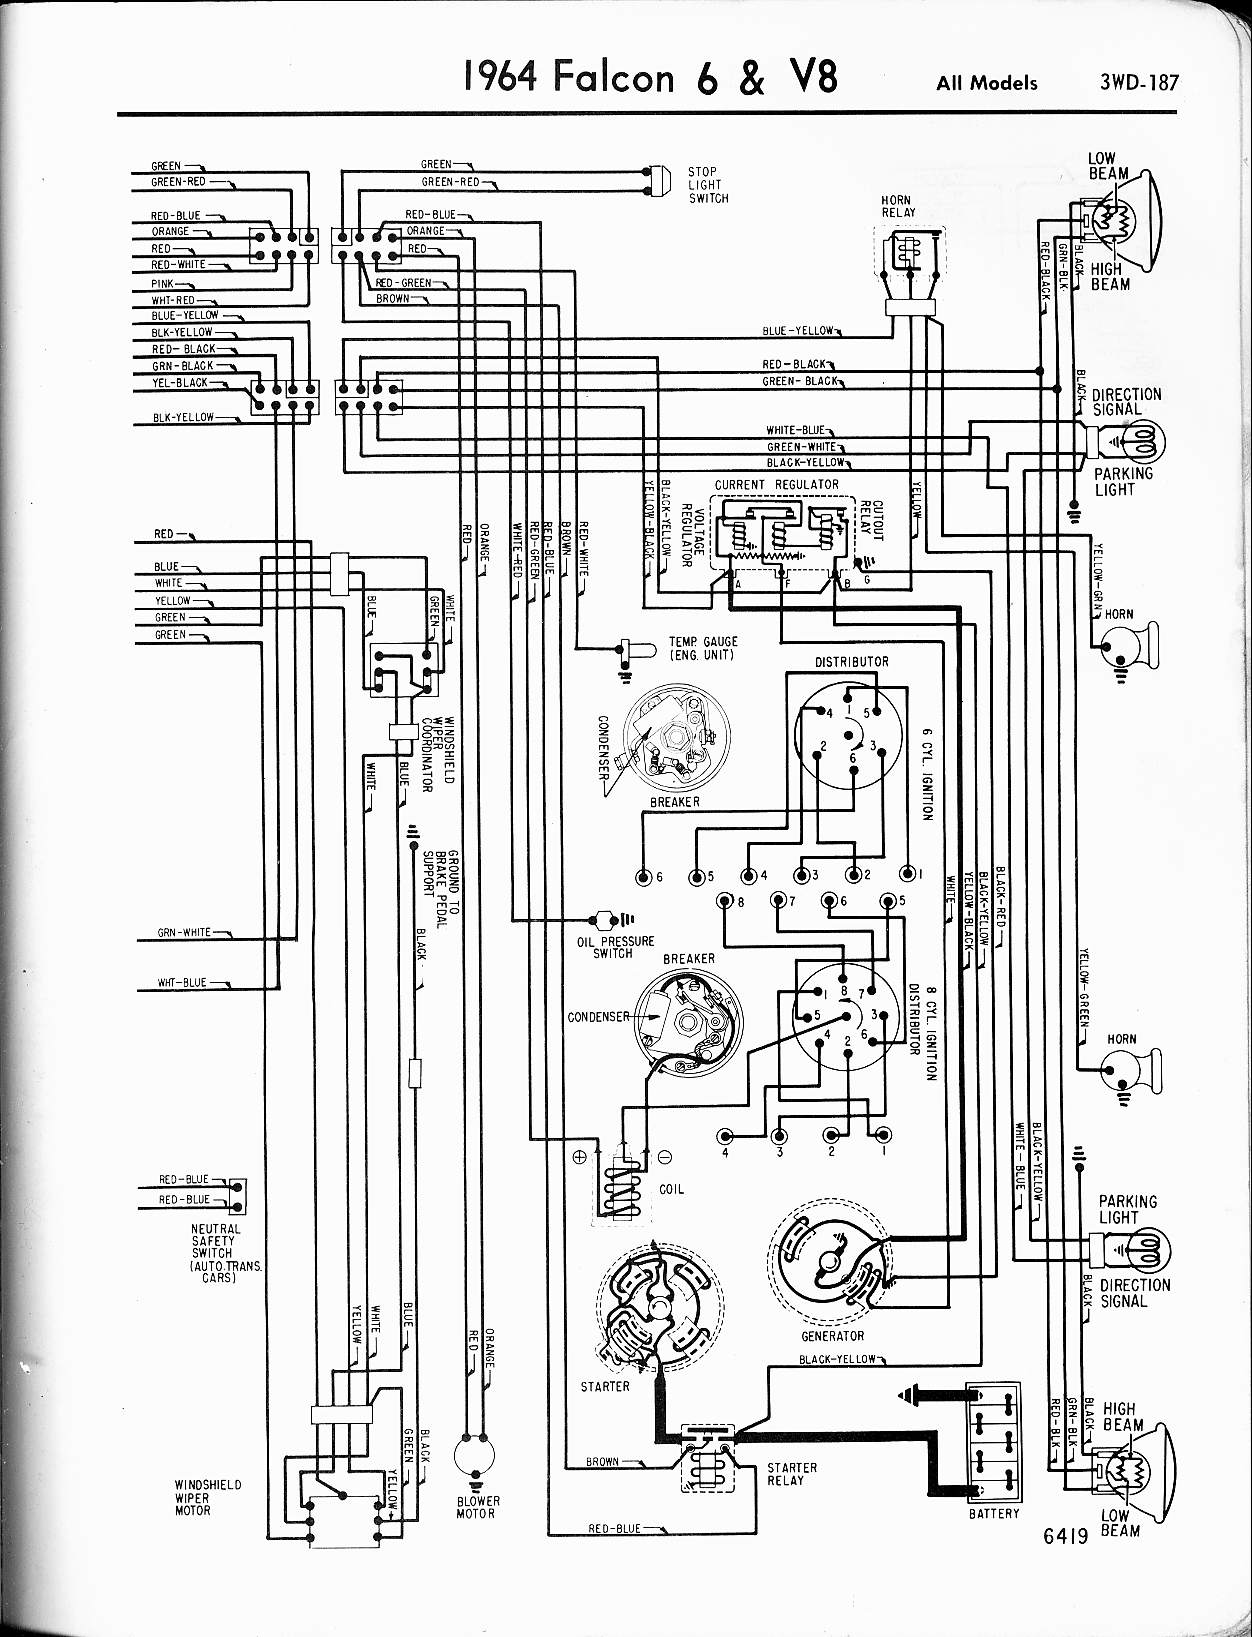 MWire5765 187 au falcon wiring diagram falcon guide \u2022 wiring diagrams j squared co  at reclaimingppi.co